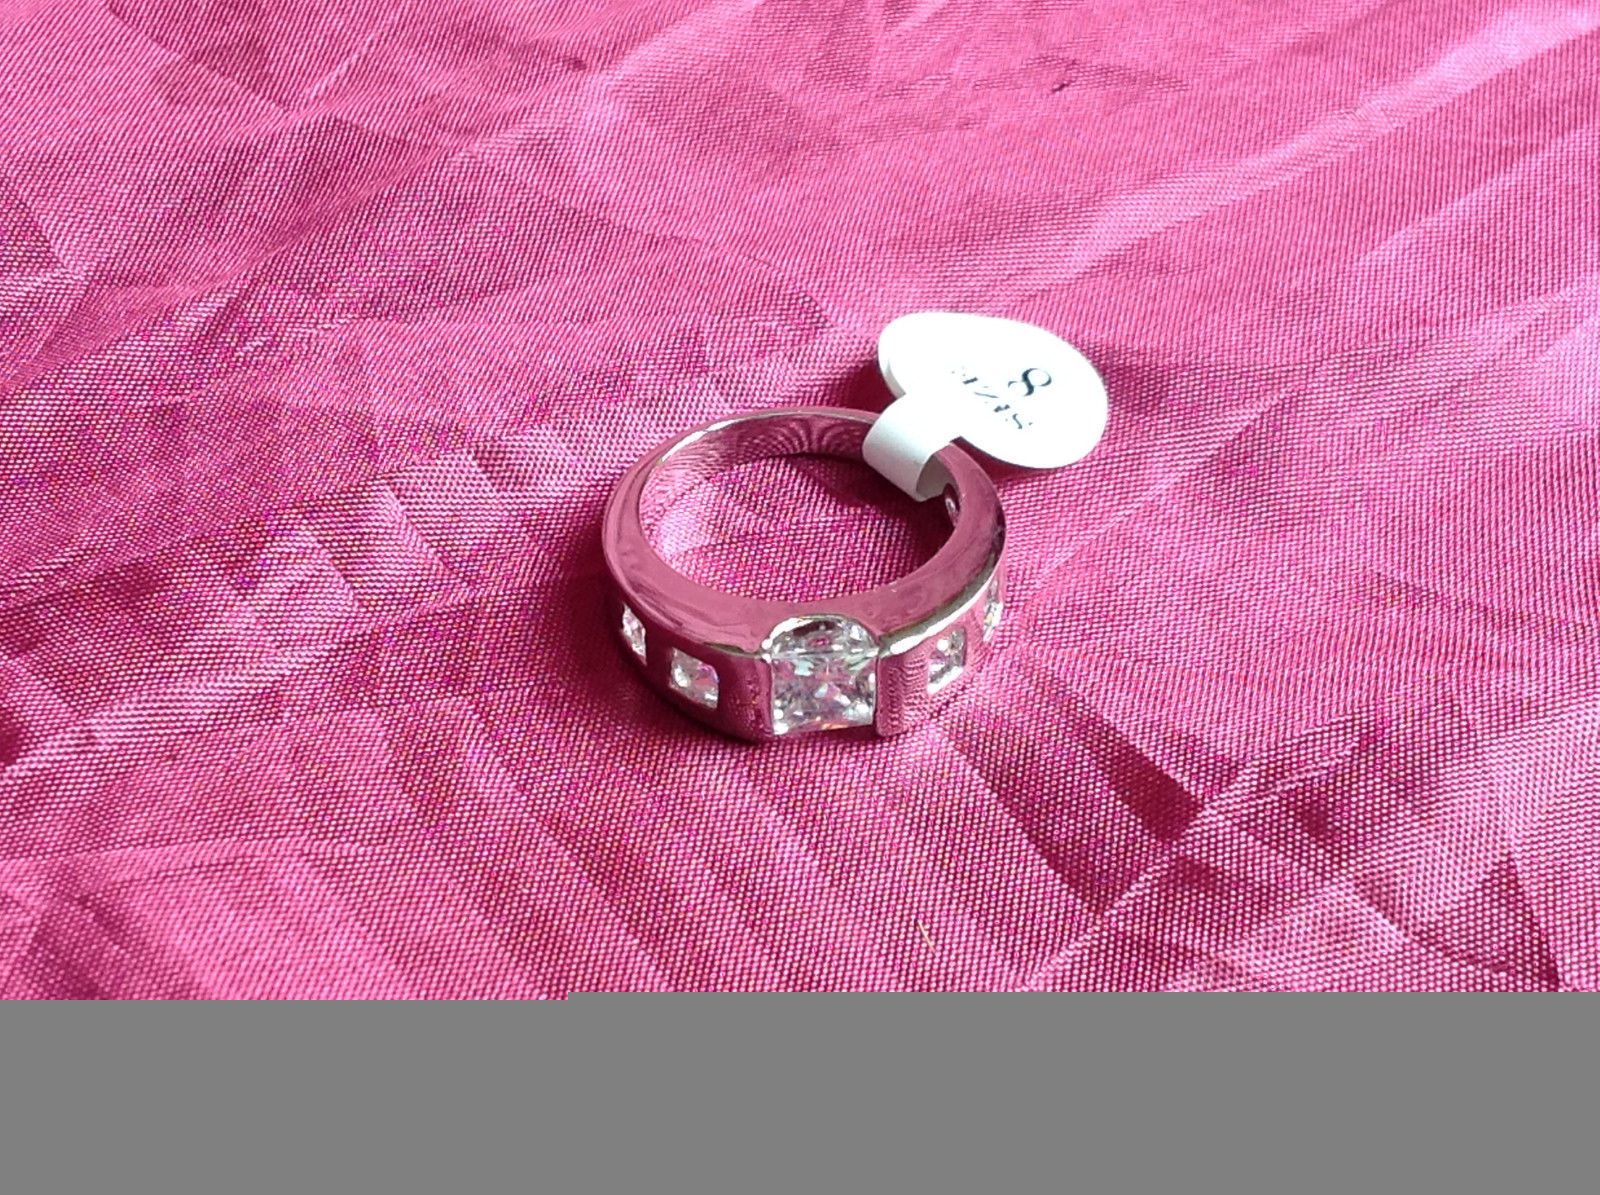 Silver Rhodium and  CZ Stone  Ring  Square Cut Stones with Large Stone Size 8